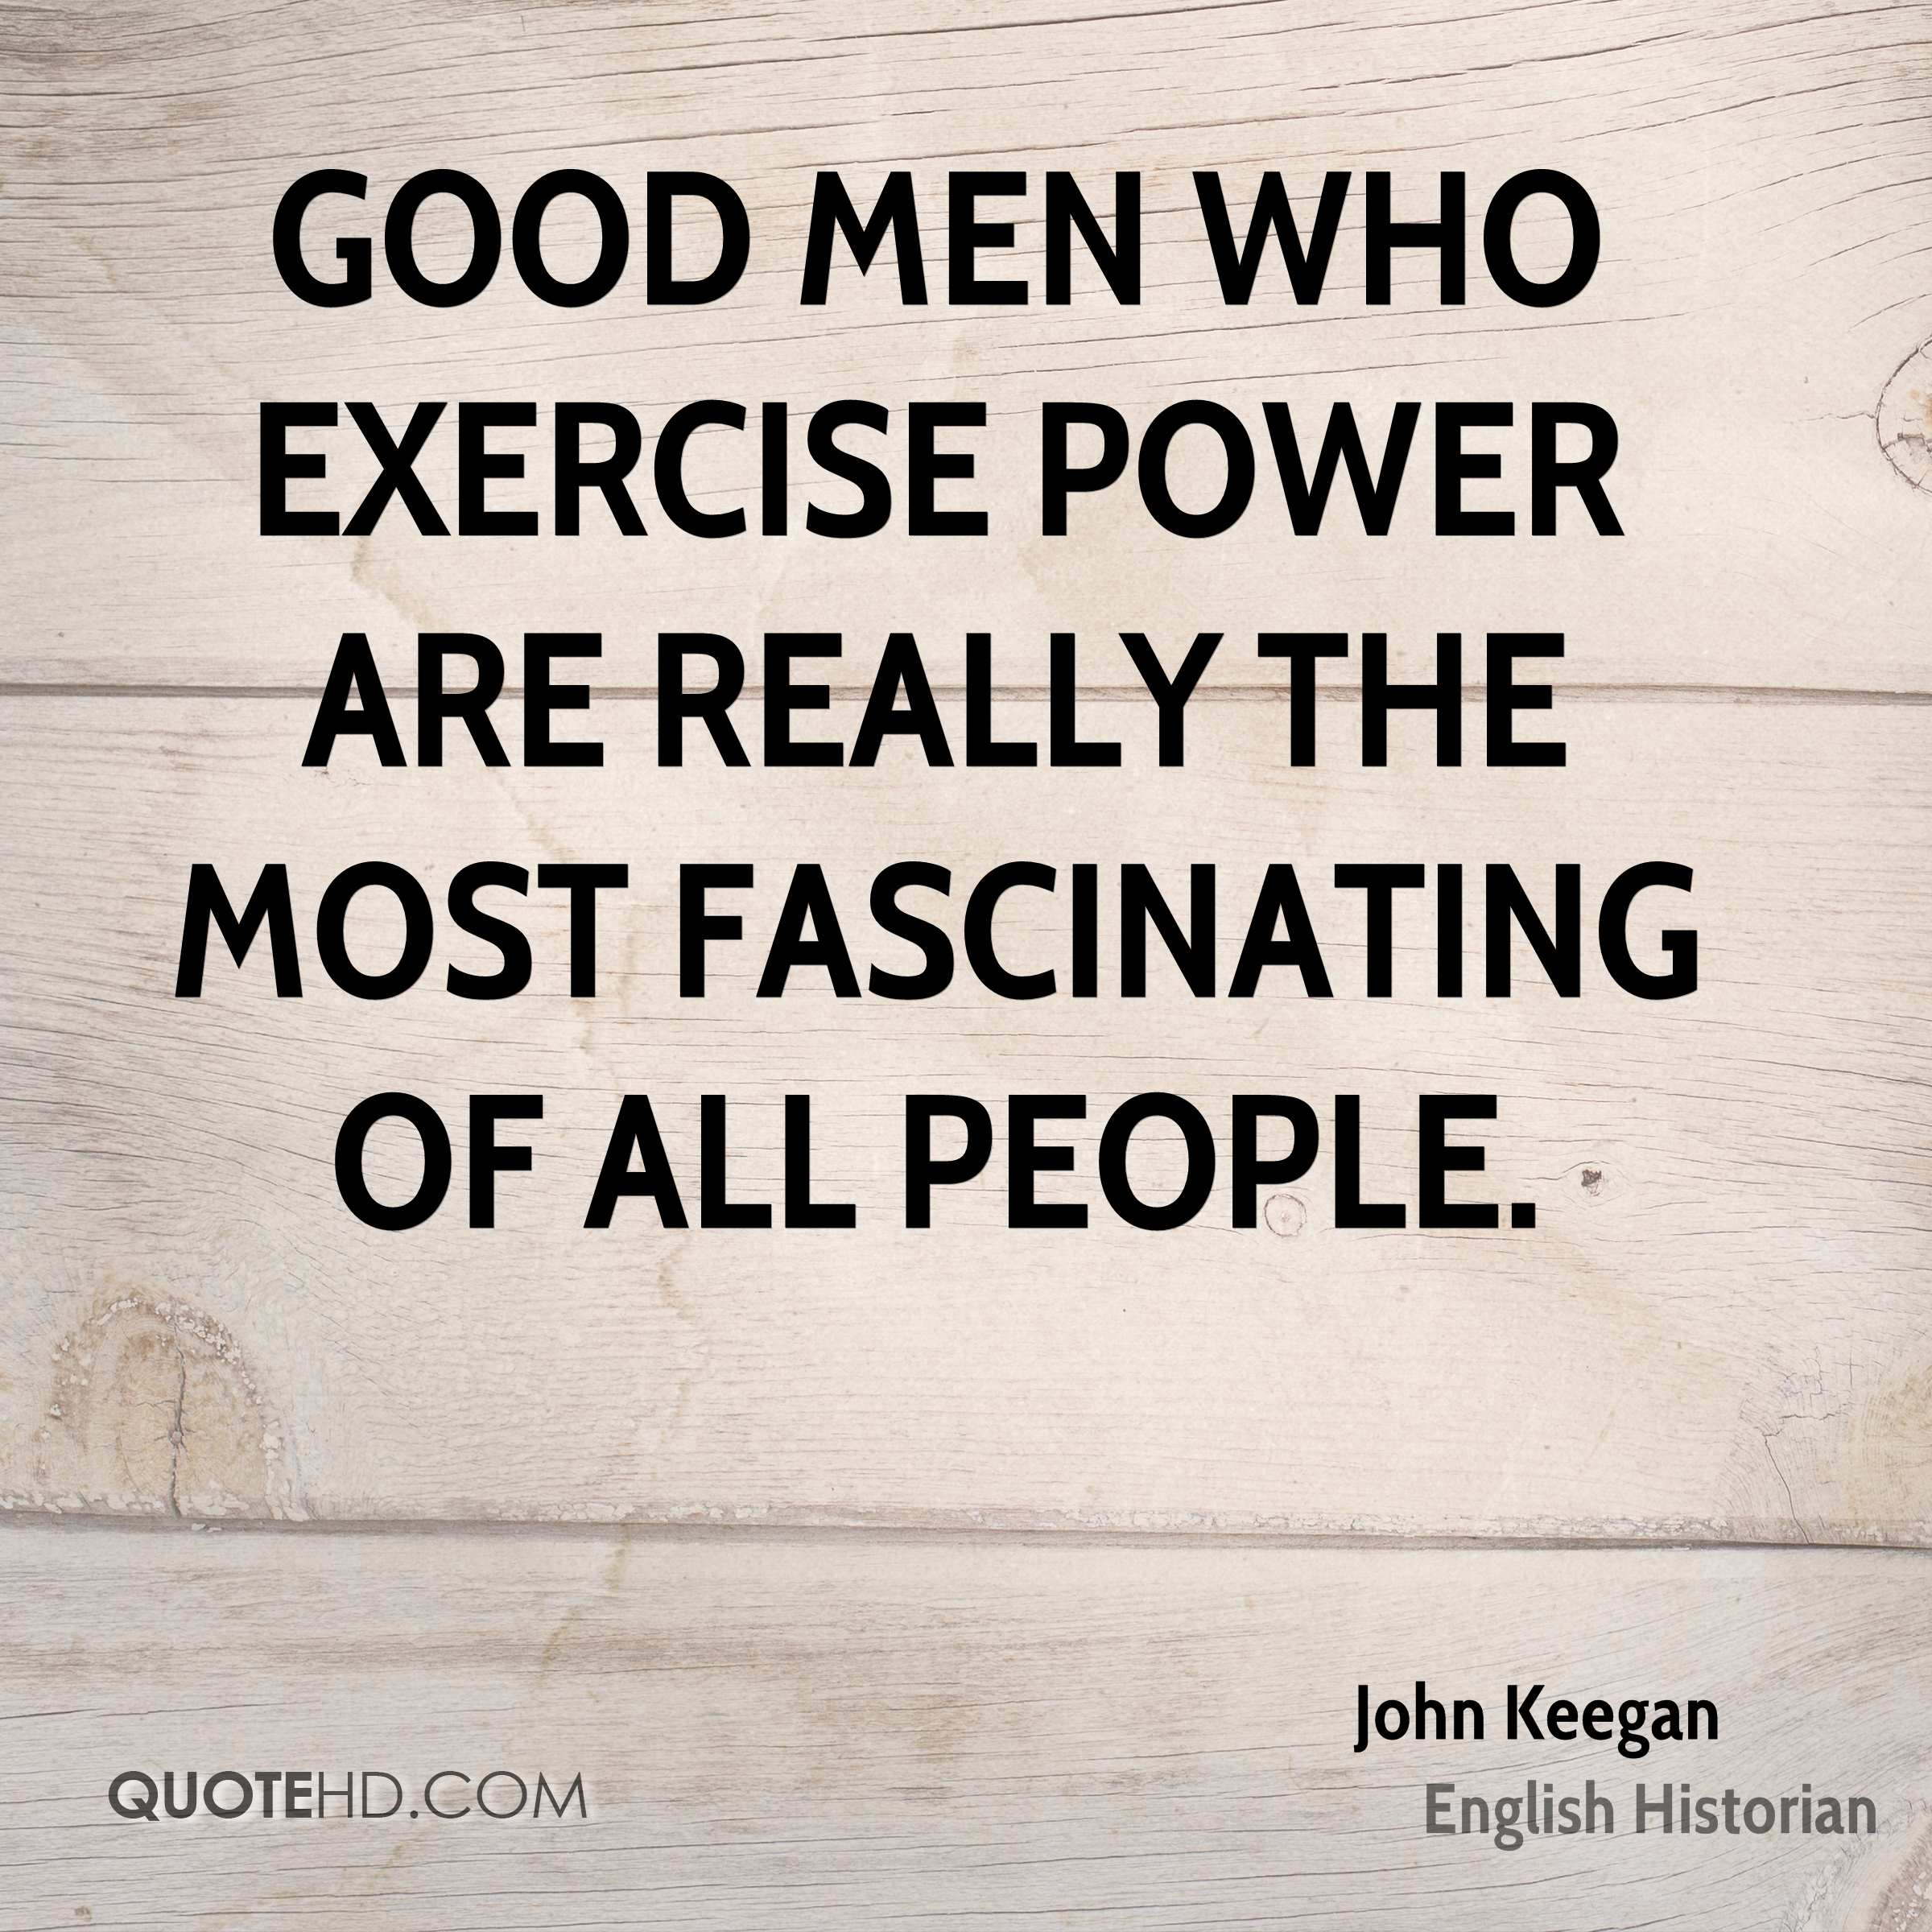 Good men who exercise power are really the most fascinating of all people.